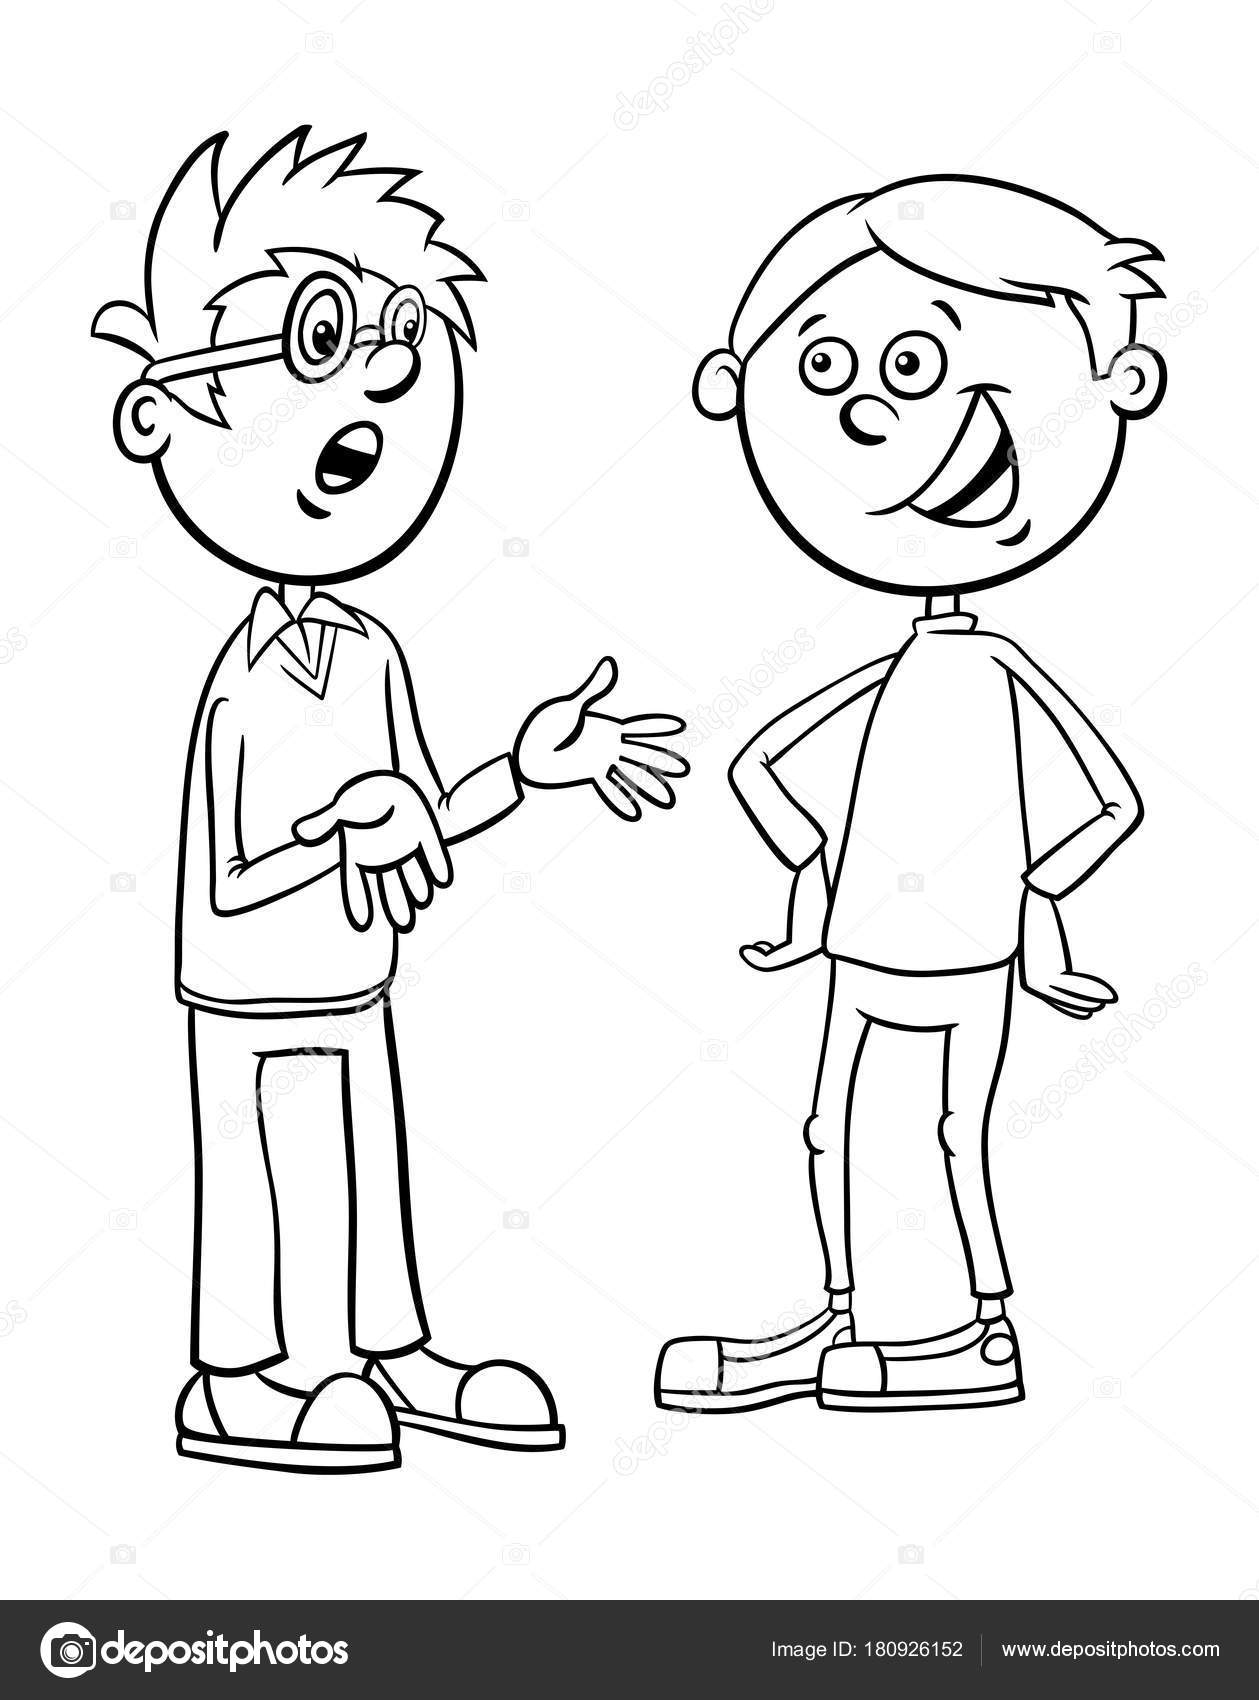 Cartoon People Talking Coloring Page Free Coloring Pages Download ...